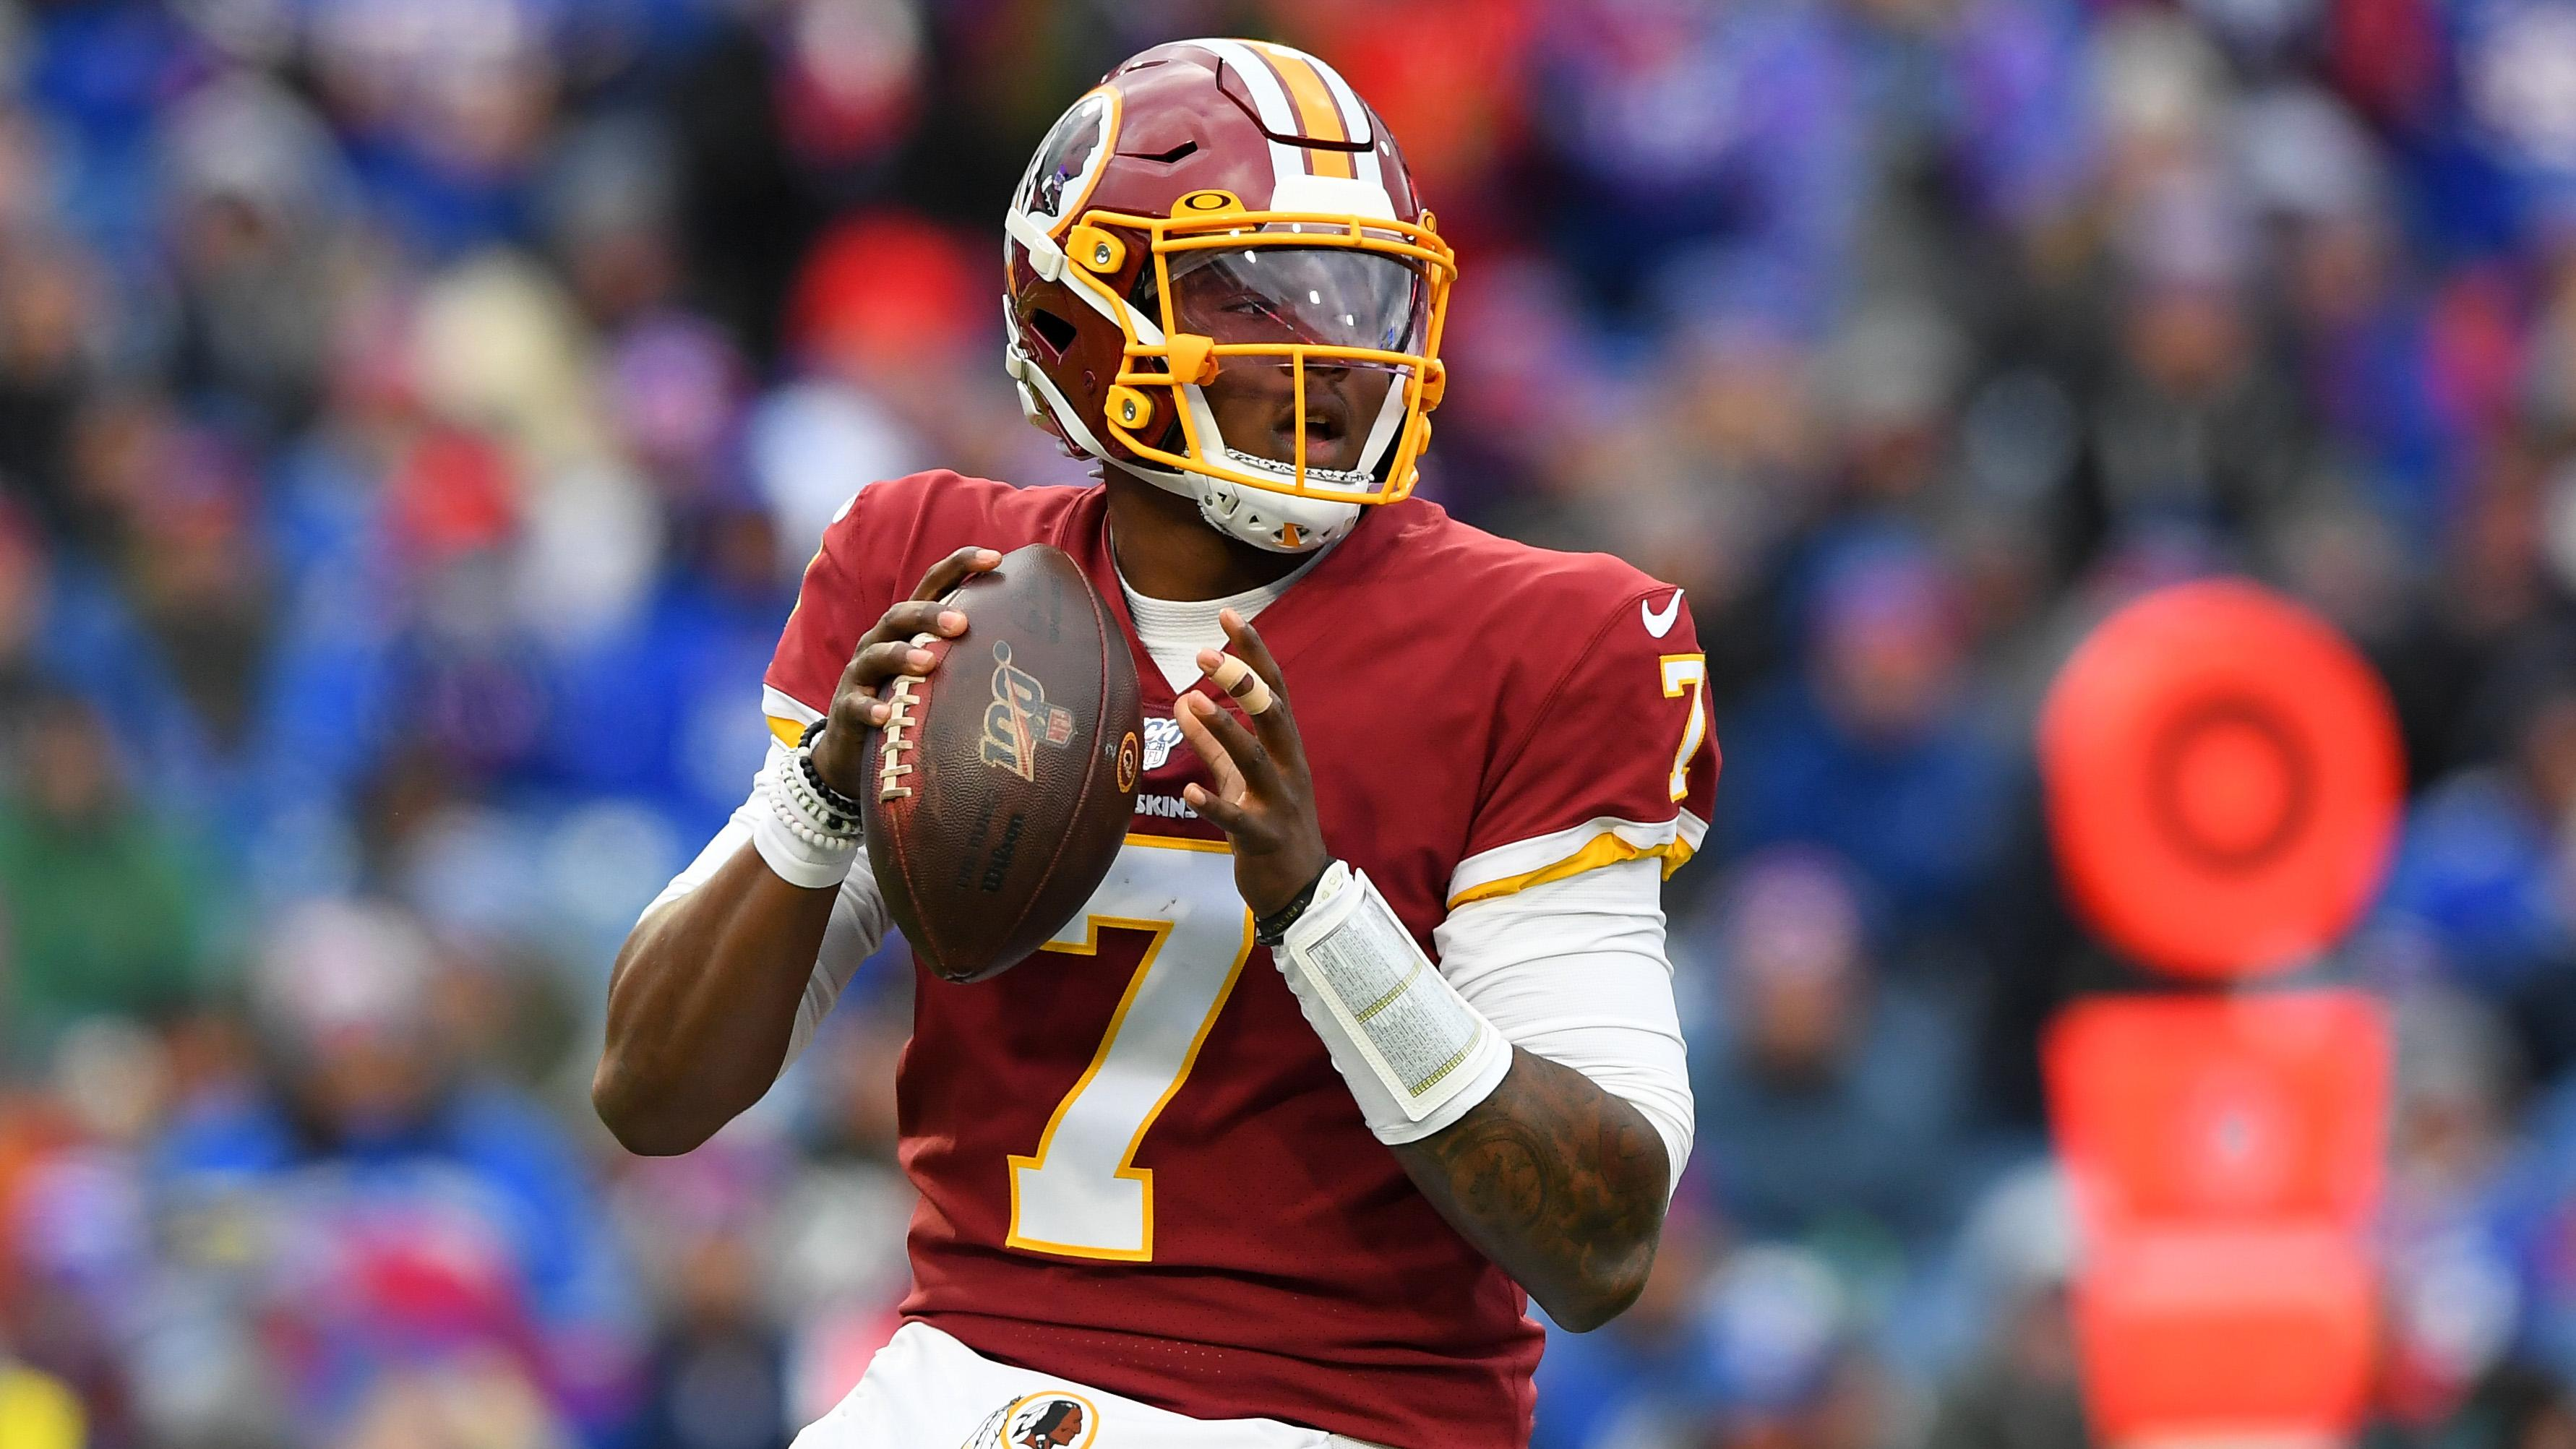 If the Redskins go with a new name, quarterback Dwayne Haskins has a favorite - Yahoo Sports